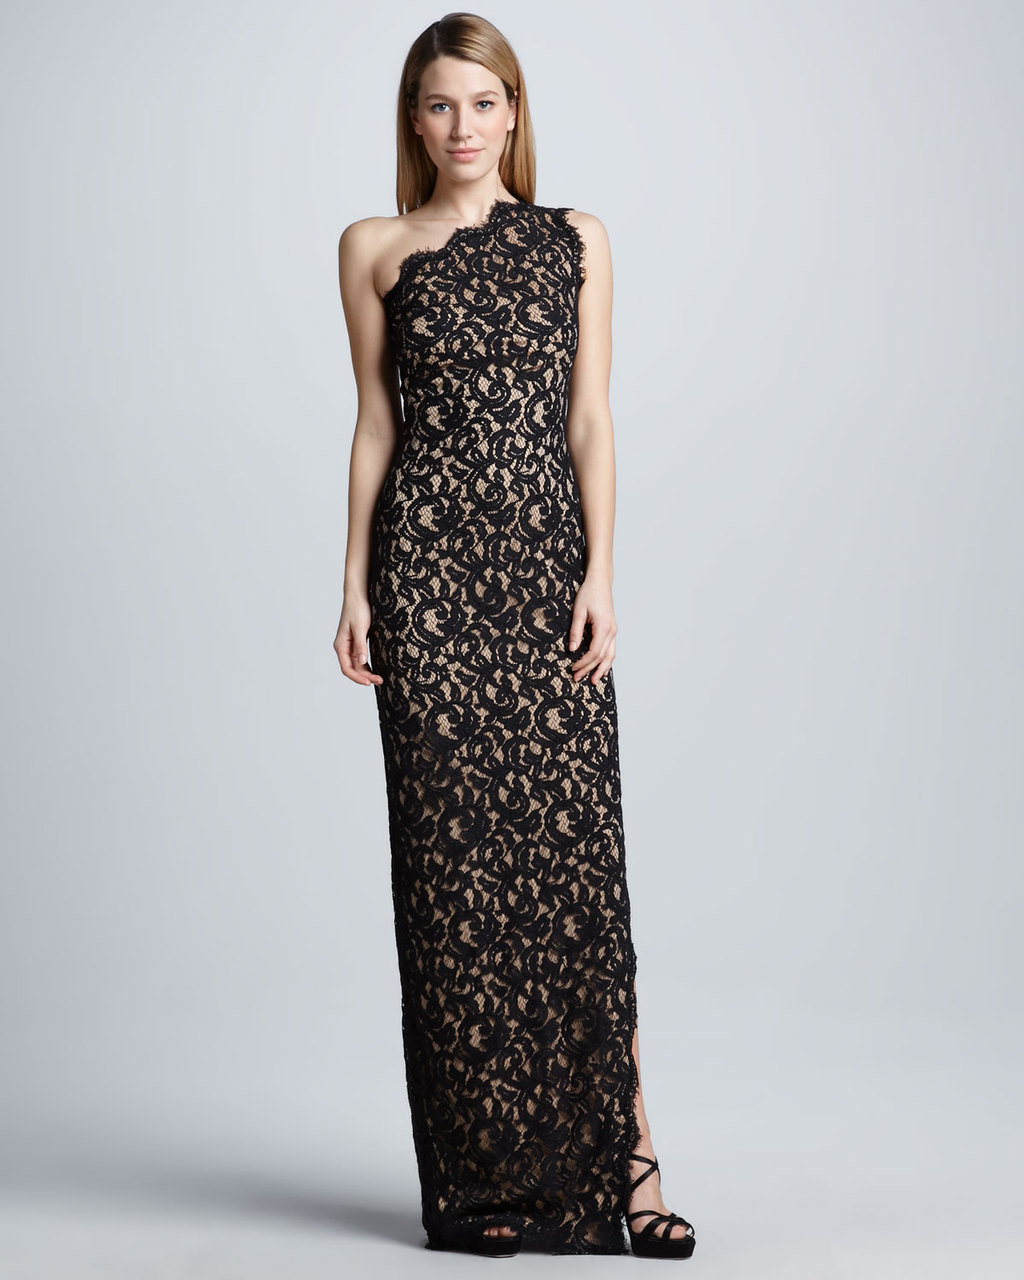 One-shoulder-black-lace-over-nude-mob-gown.full